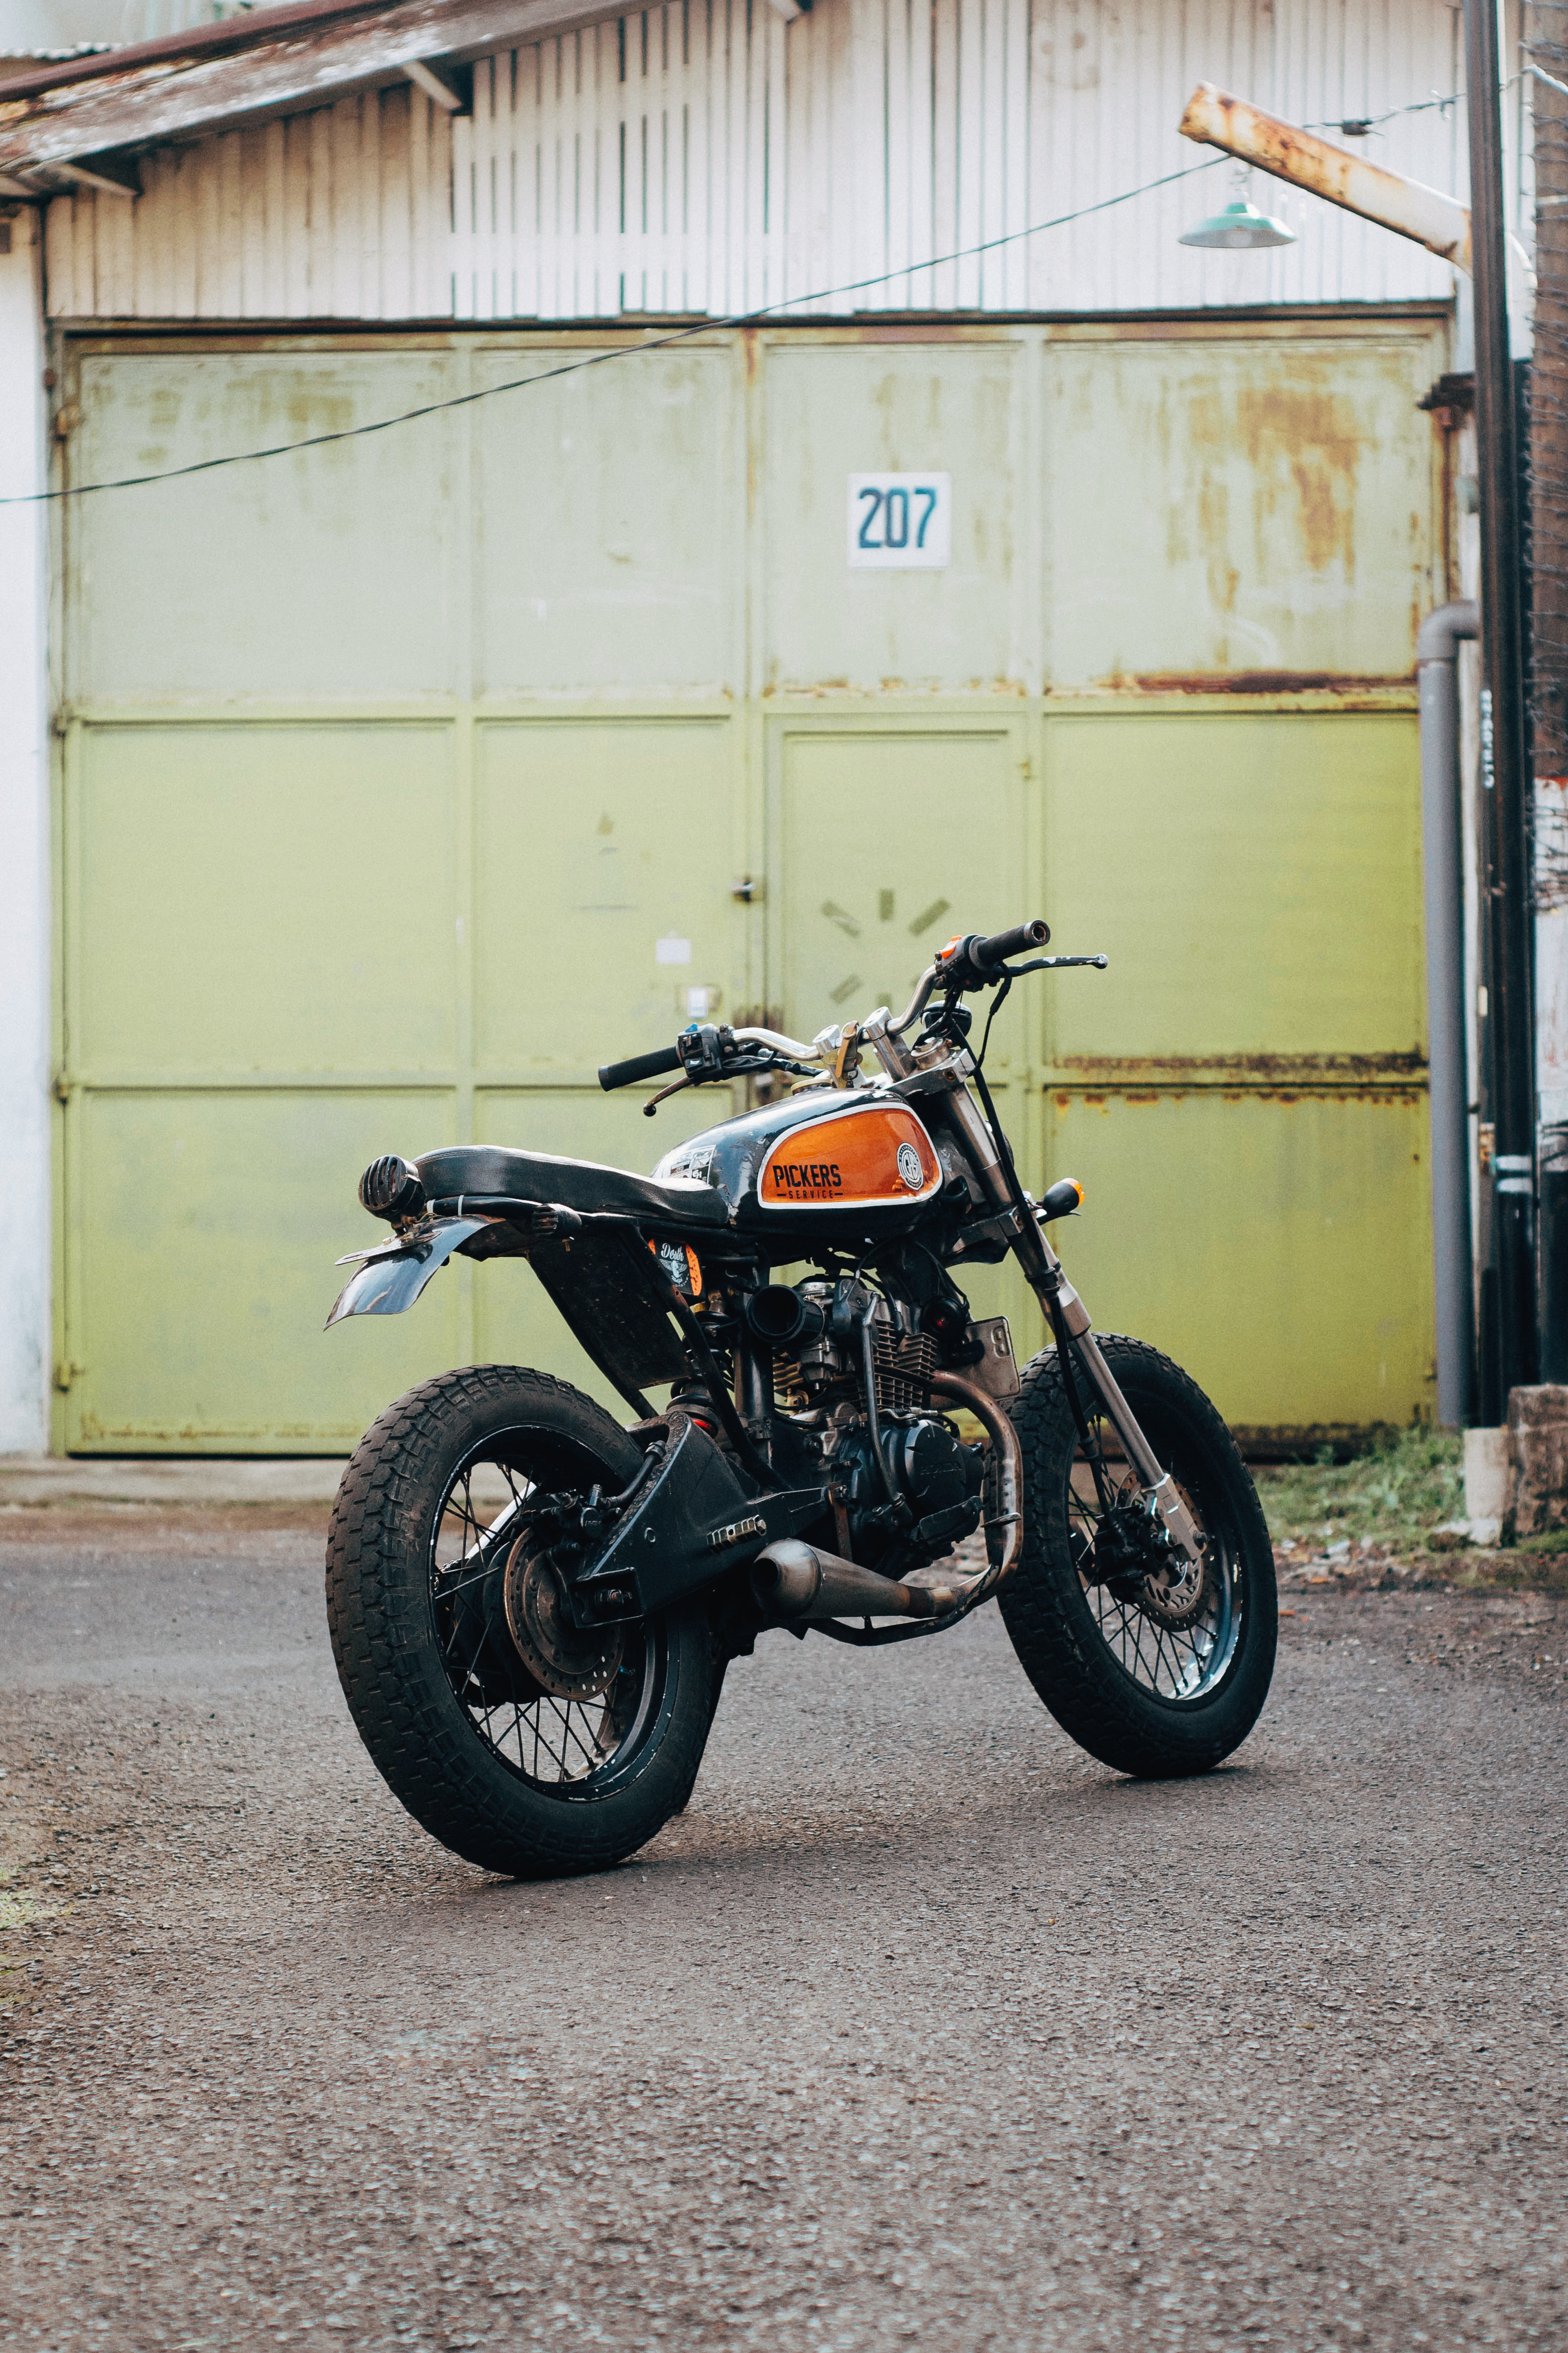 Classic black and orange motorcycle